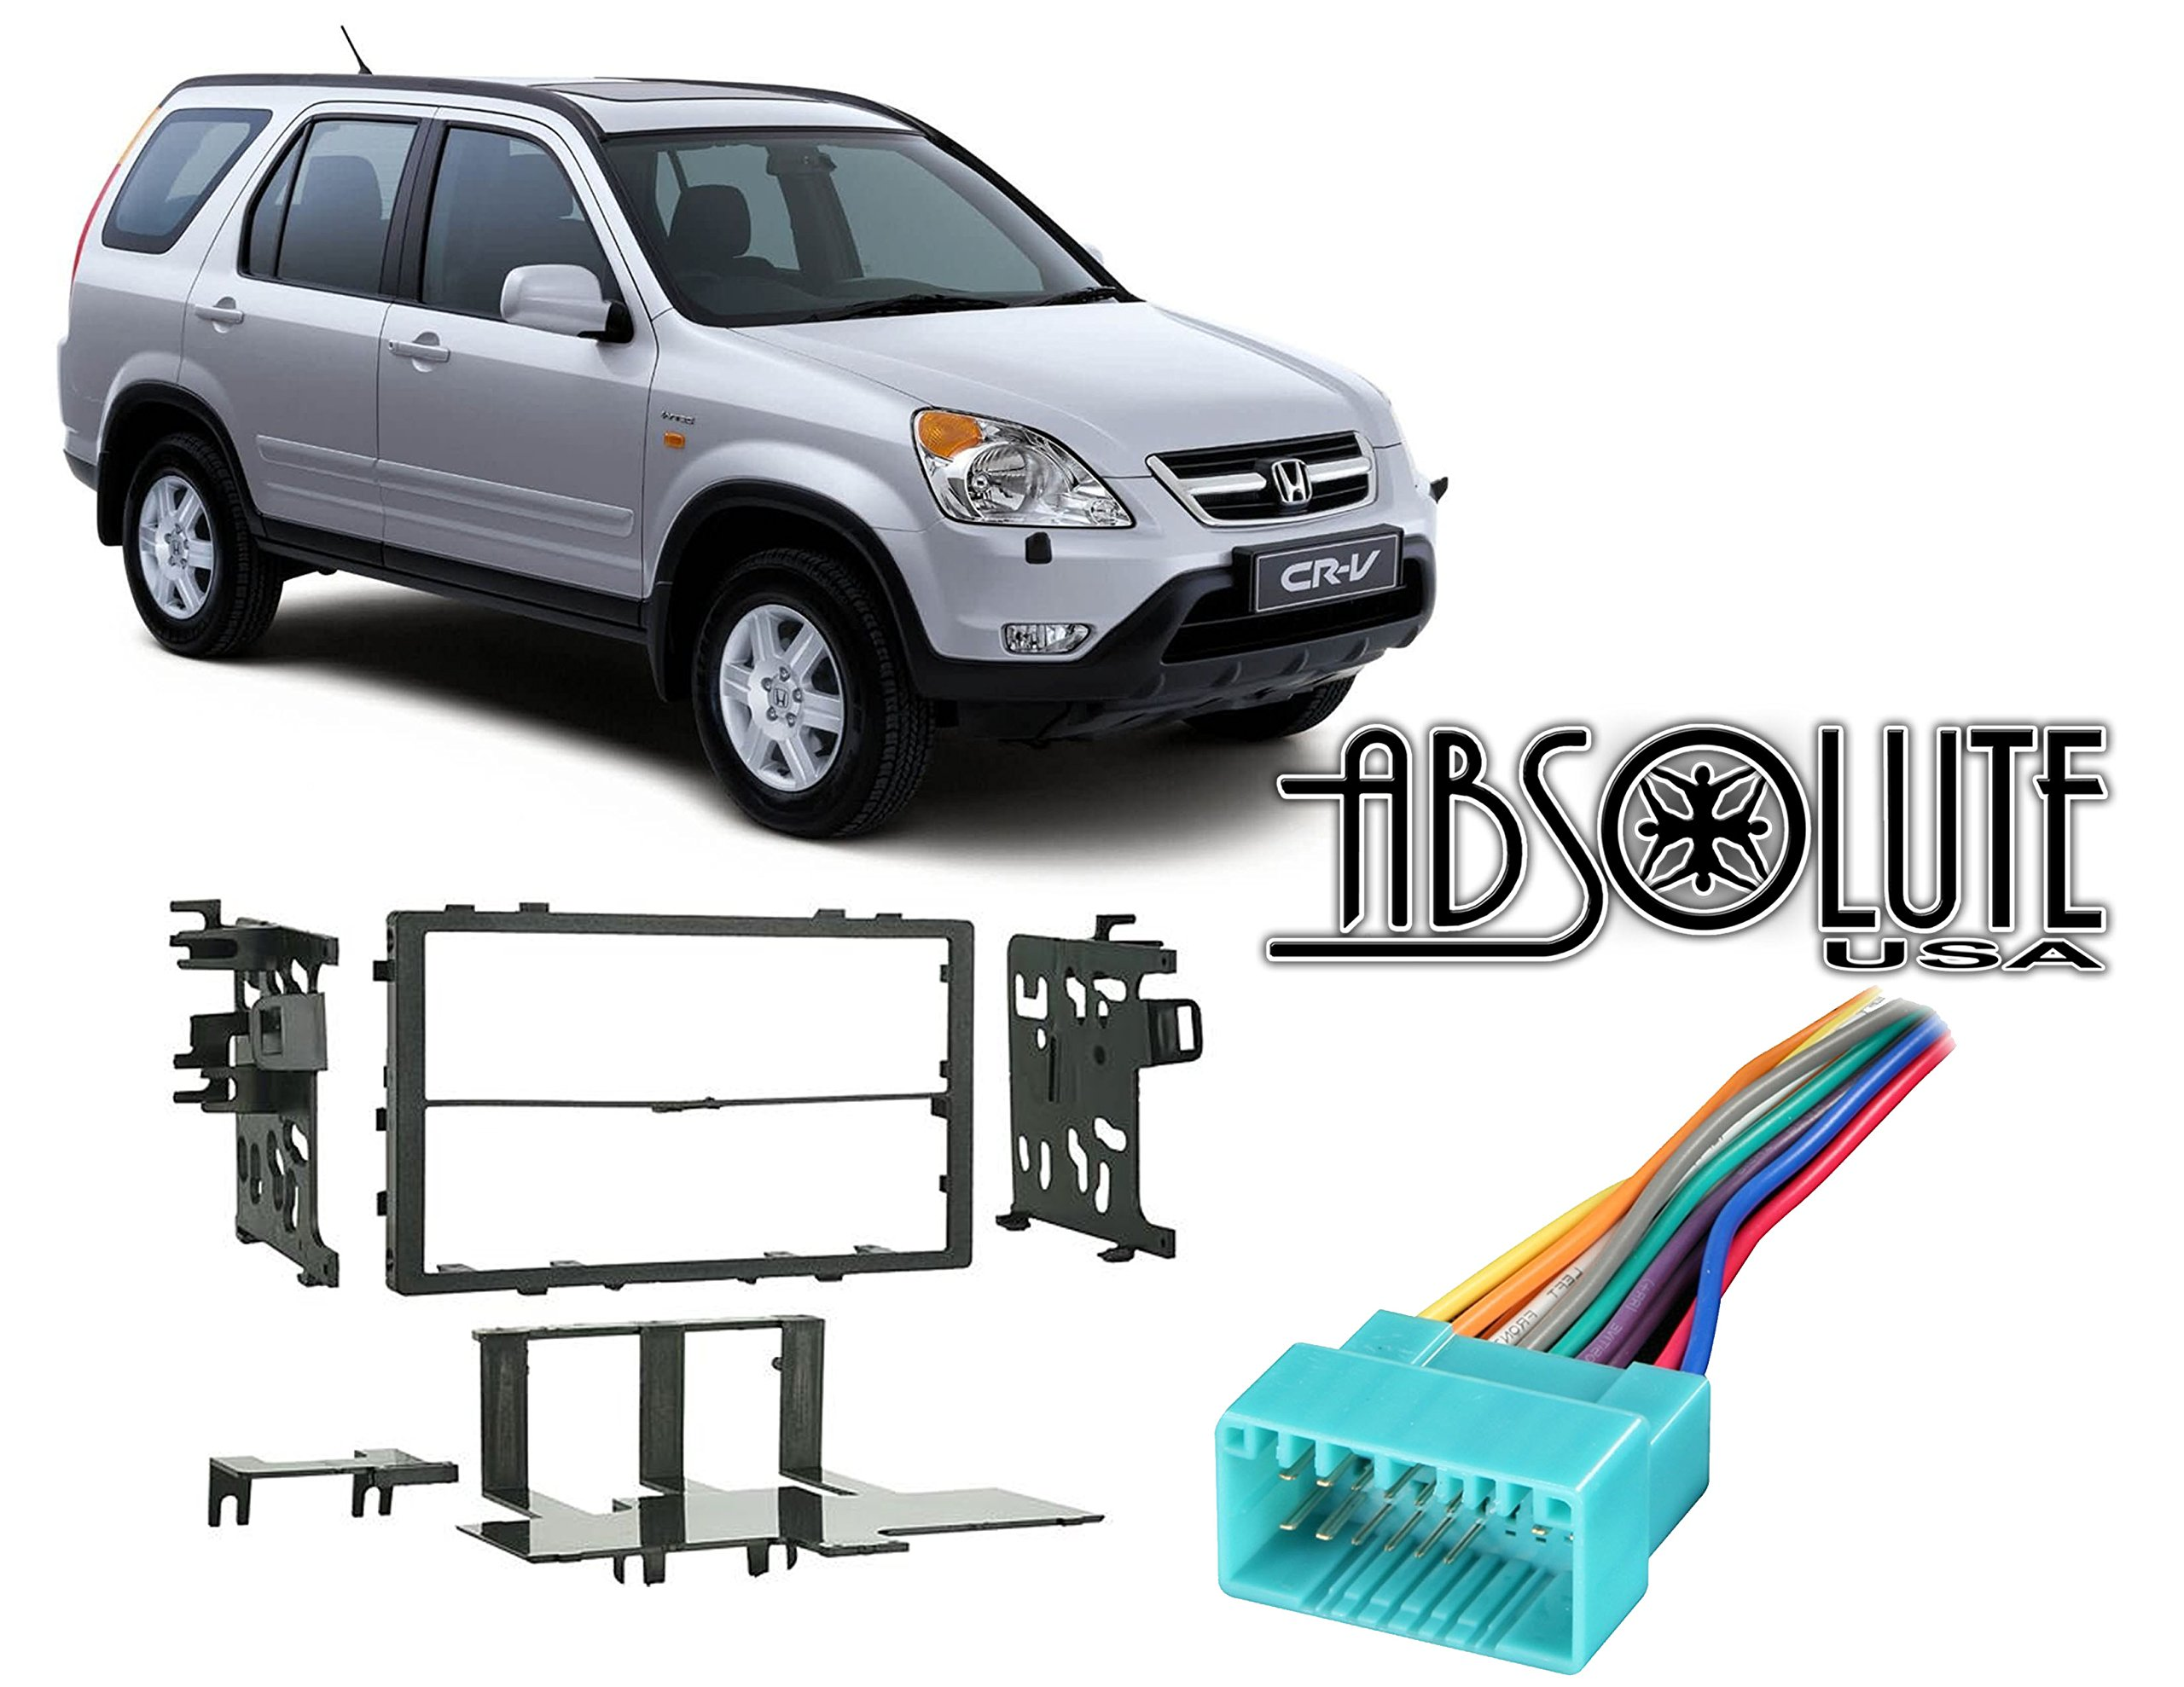 Cheap Honda Crv Radio Wiring Diagram Find Online Store 2010 Antenna Parts Get Quotations Absolute Radiokitpkg19 Fits 1999 2006 Double Din Aftermarket Harness Install Dash Kit